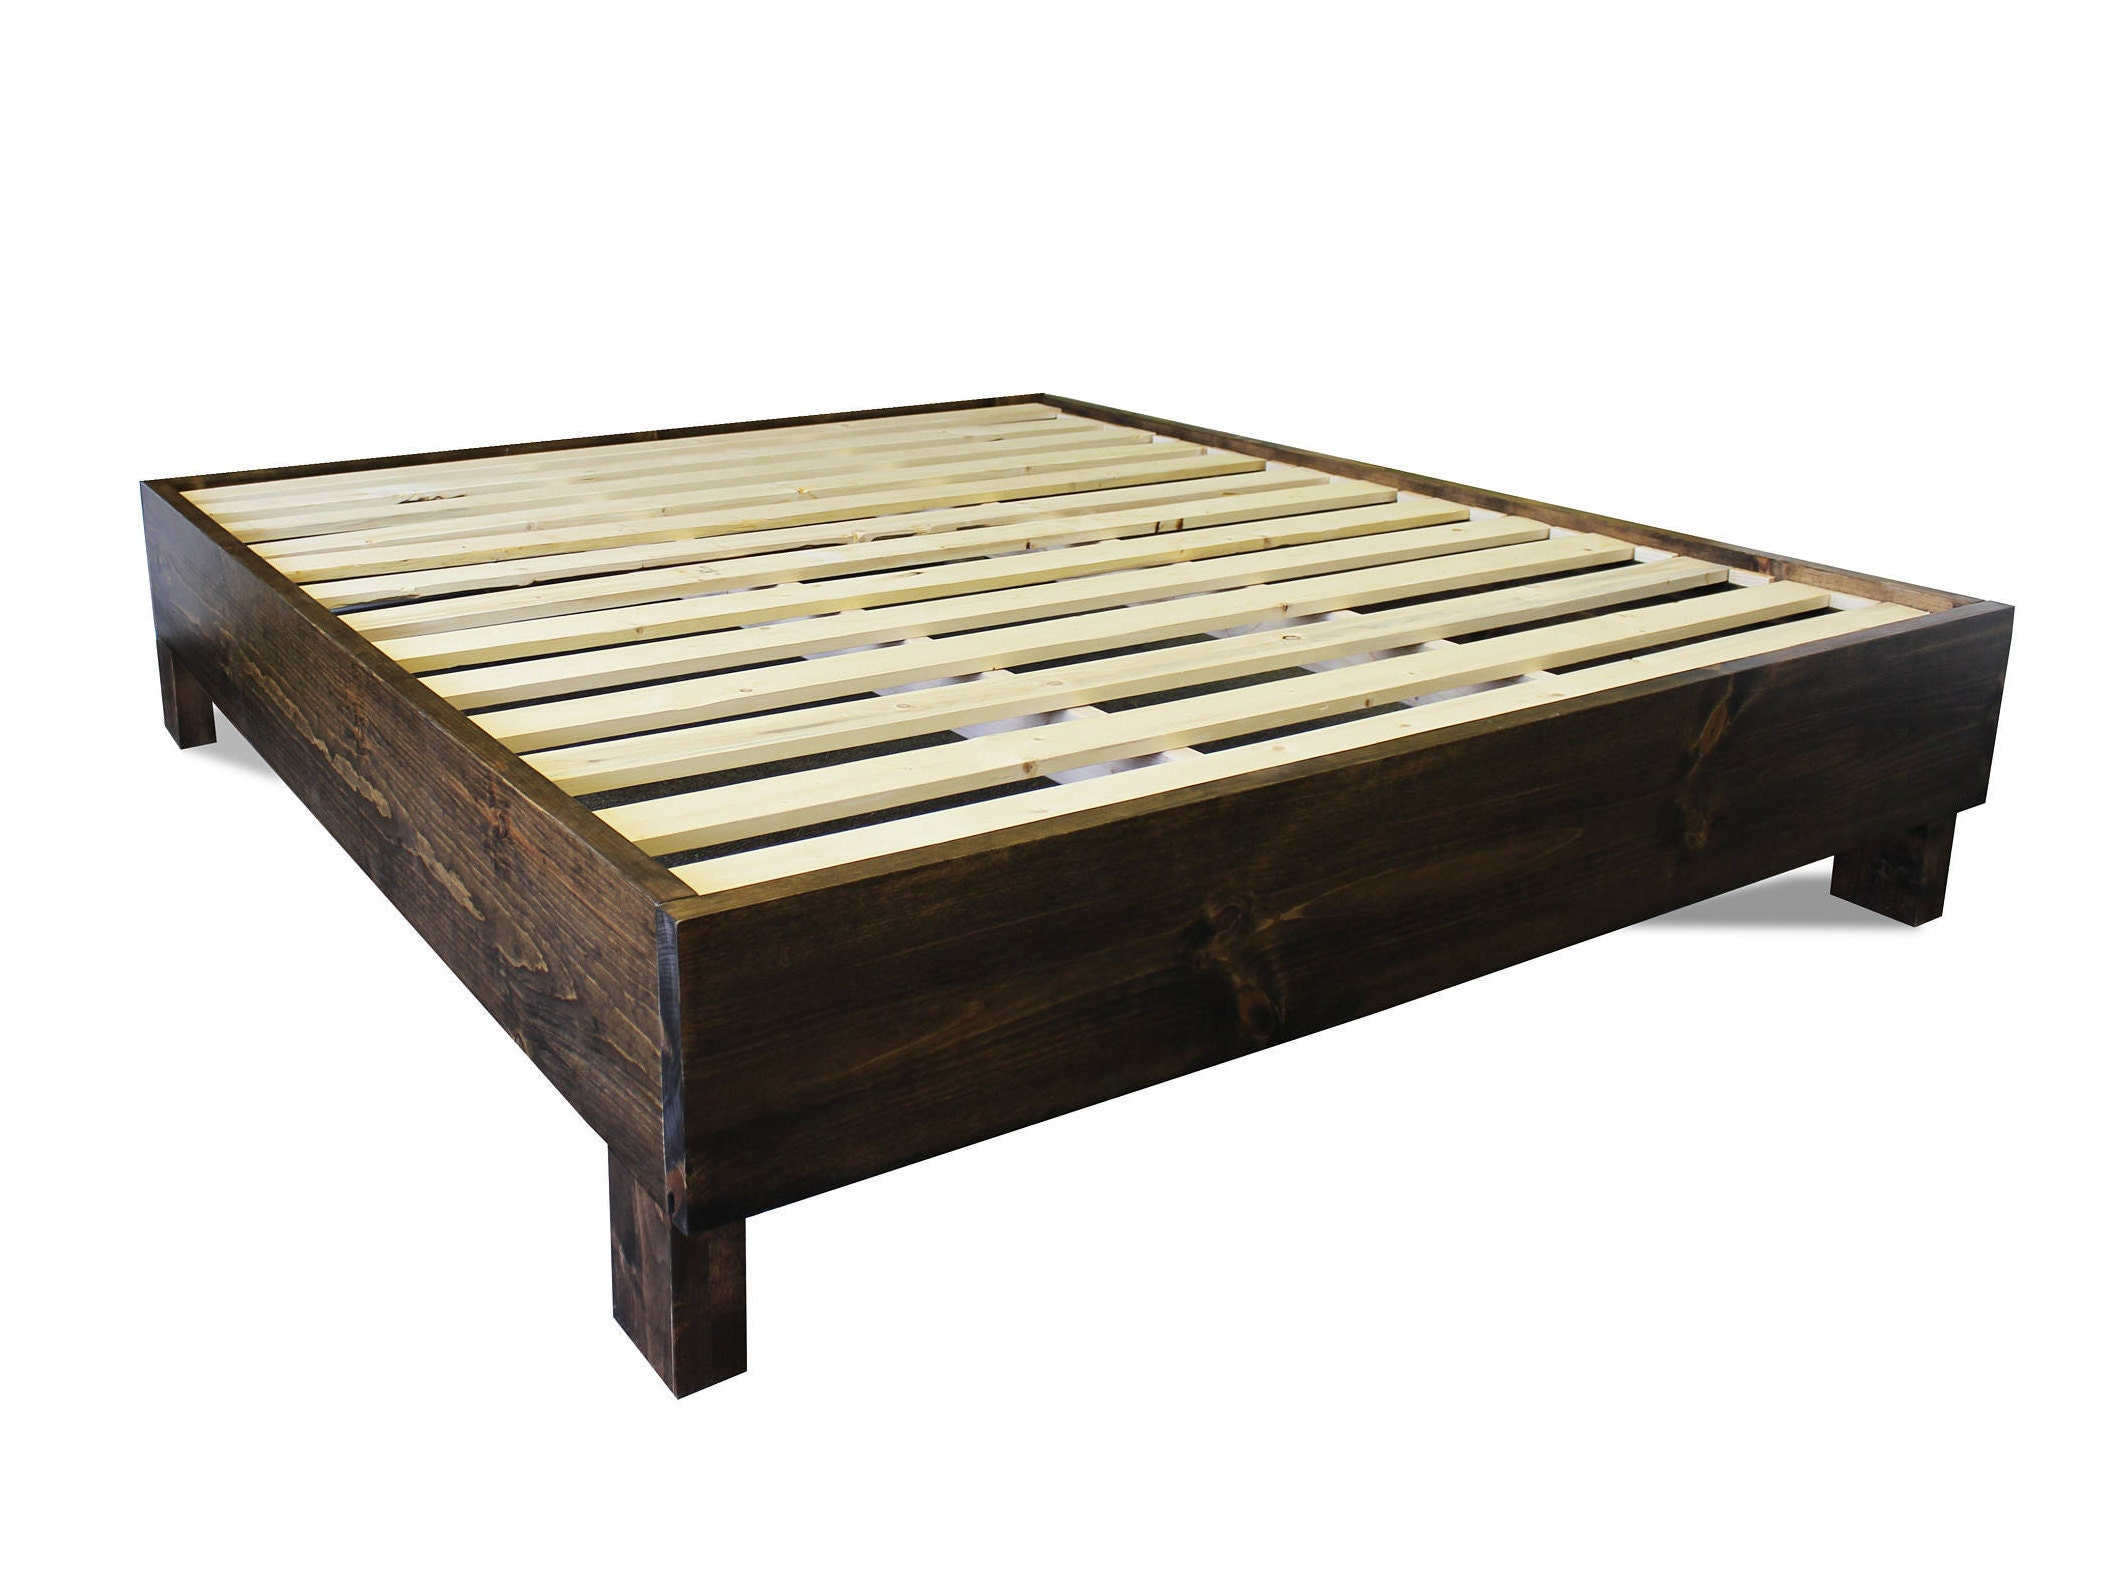 Rustic platform bed frame old world reclaimed wood style for Old world style beds